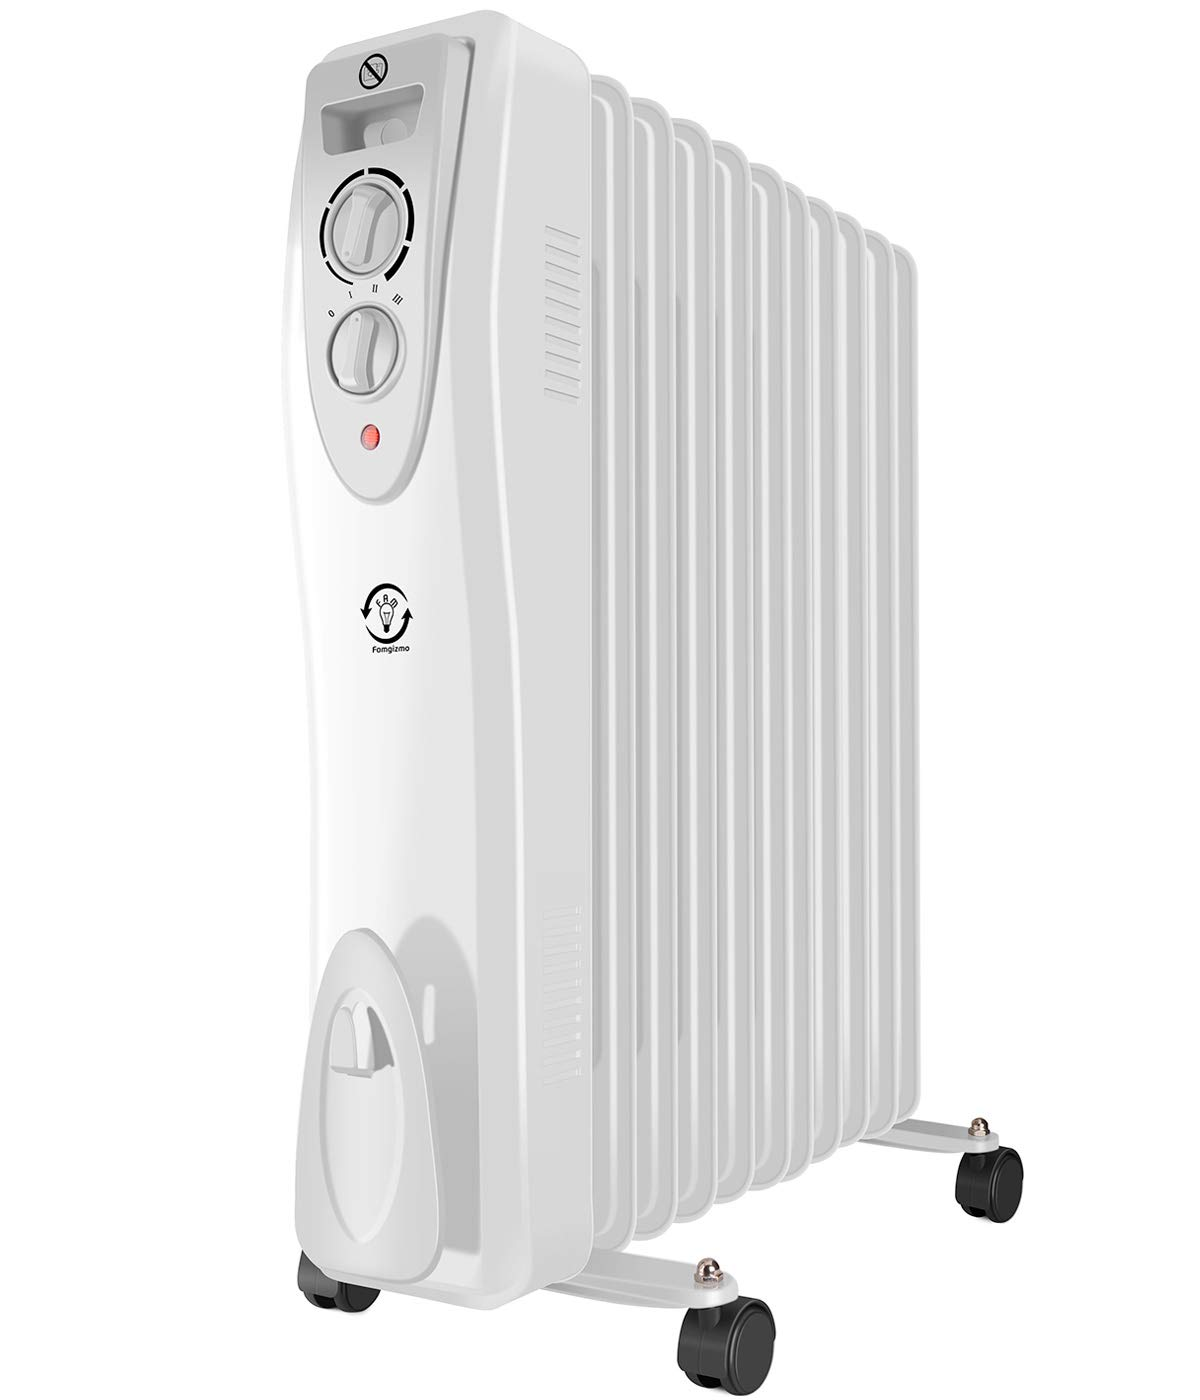 MODERN LIFE 3kw 11 Fins Oil Filled Radiator Portable Electric Heater with Adjustable Thermostat, 3 Heat Settings, Thermal Safety Cut off and Overheat Protection